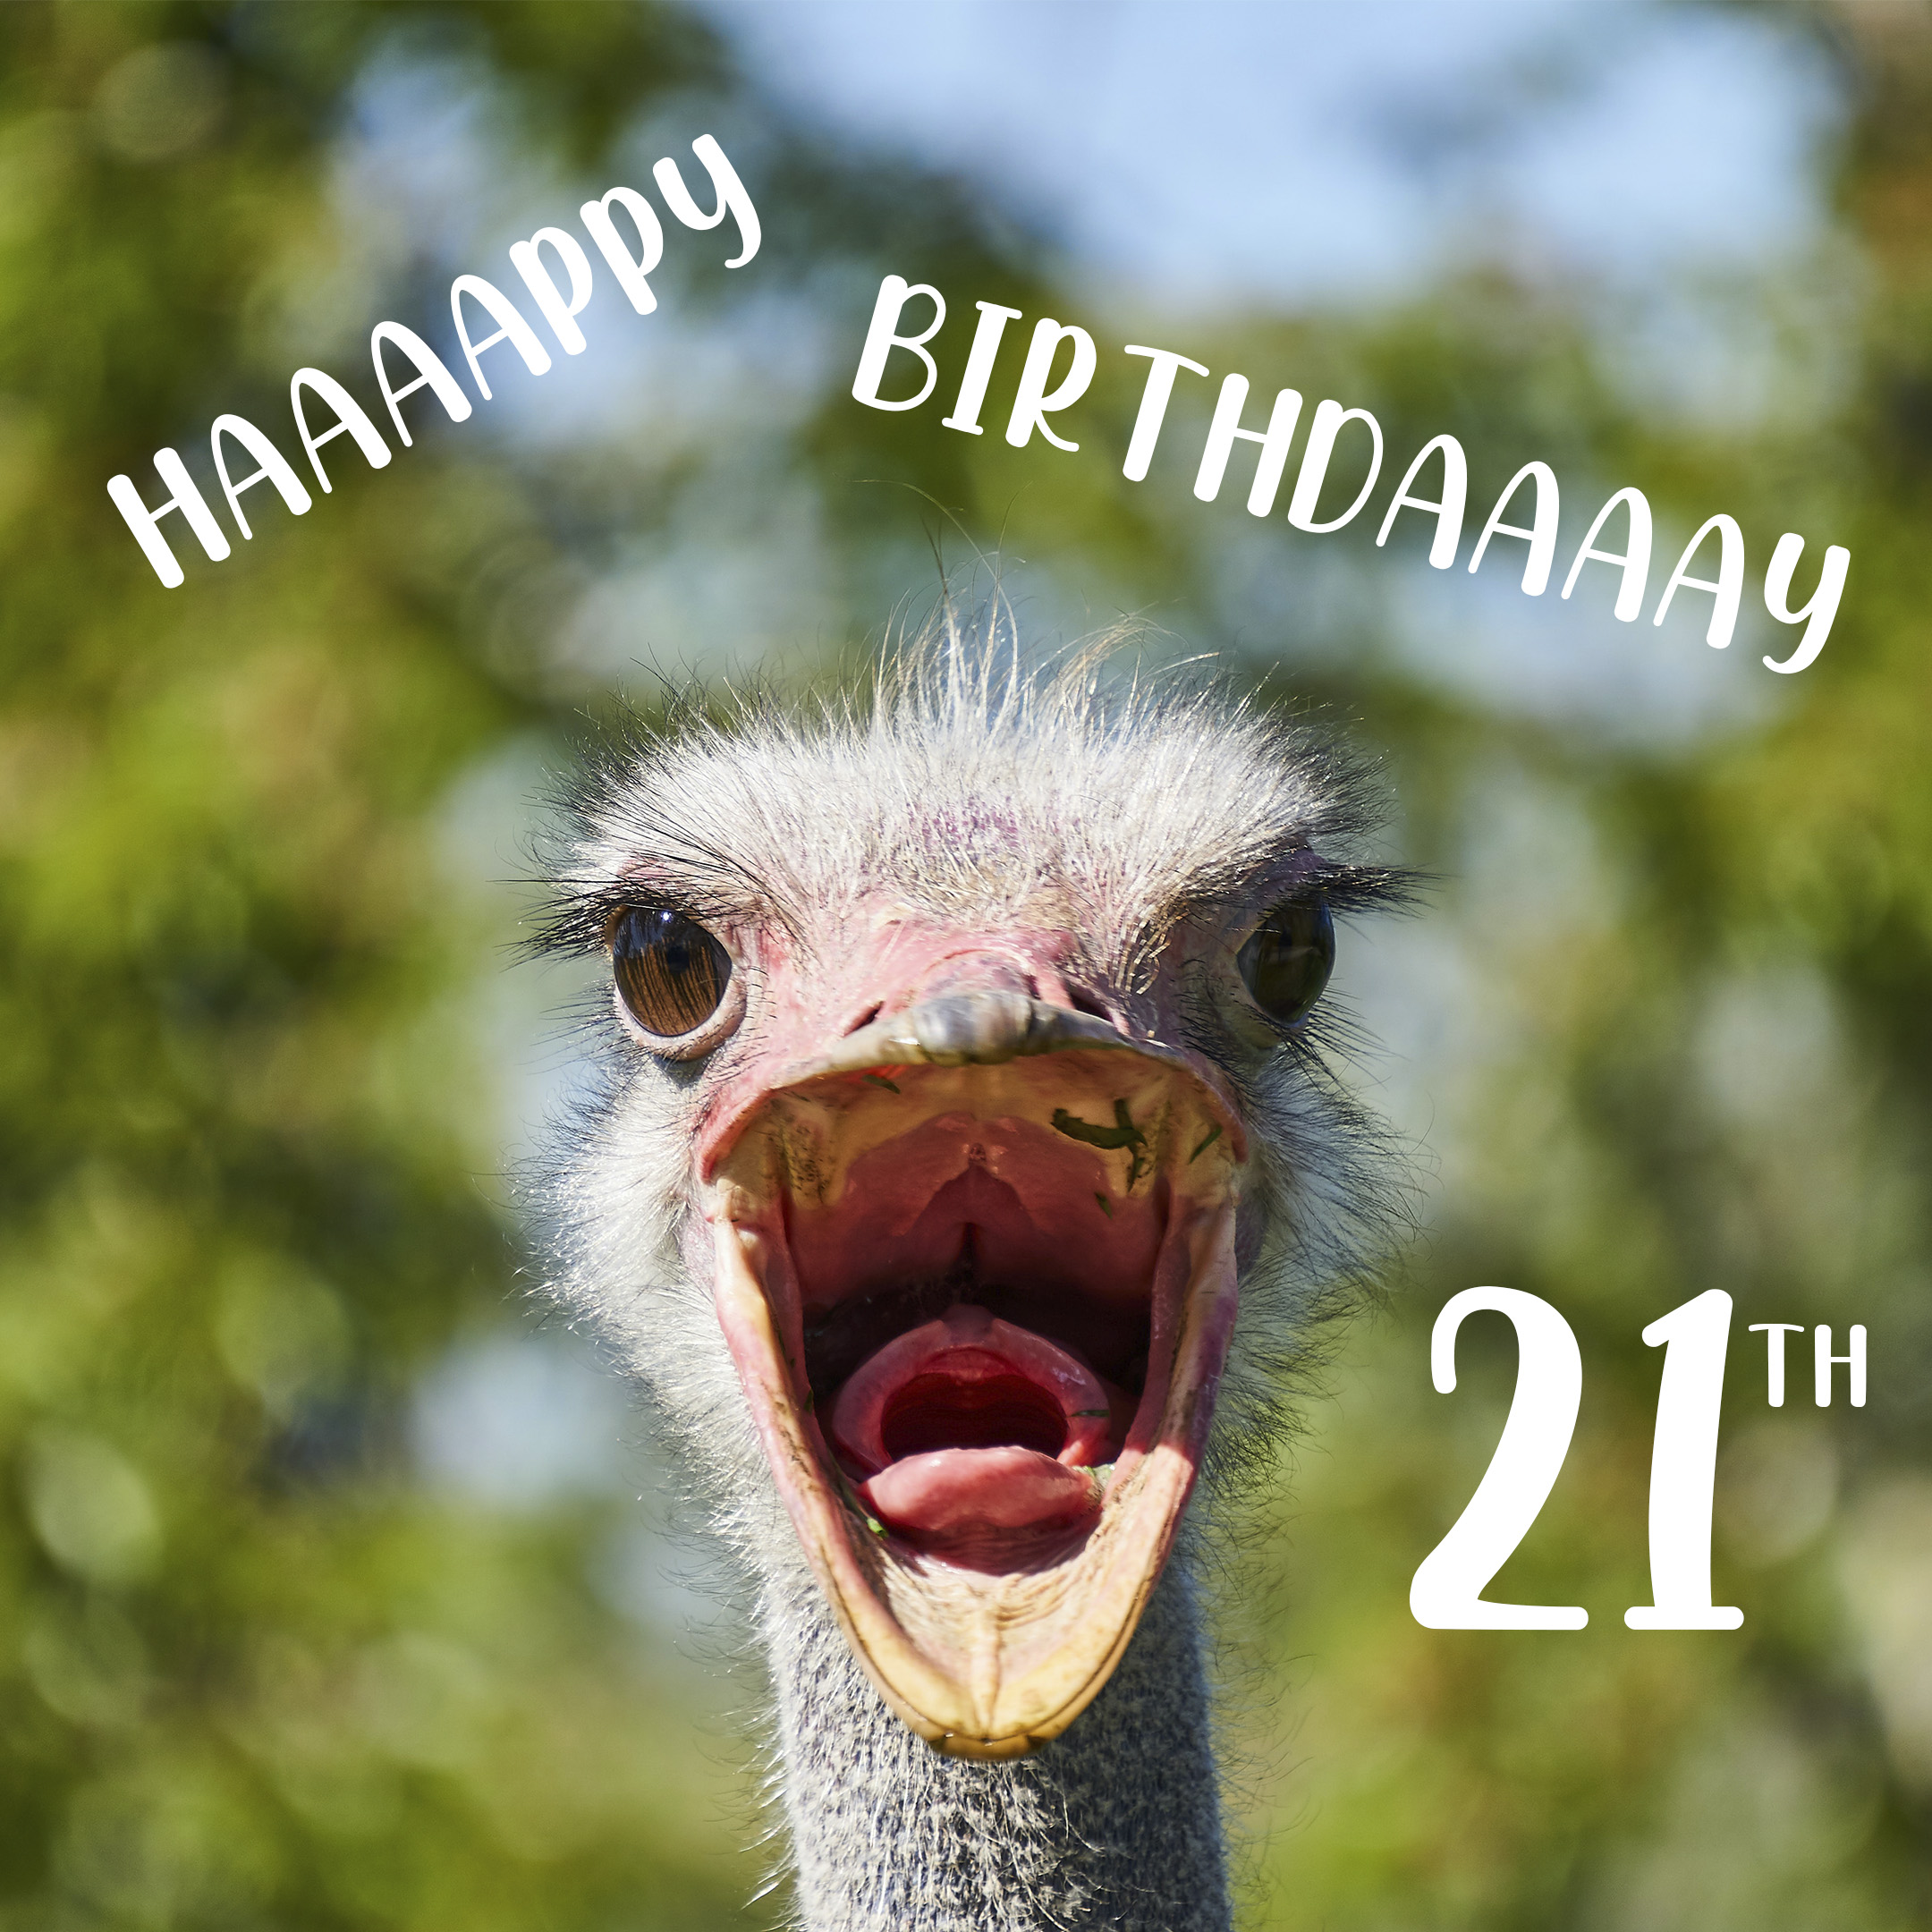 Free Funny 21th Years Happy Birthday Image With Ostrich - birthdayimg.com